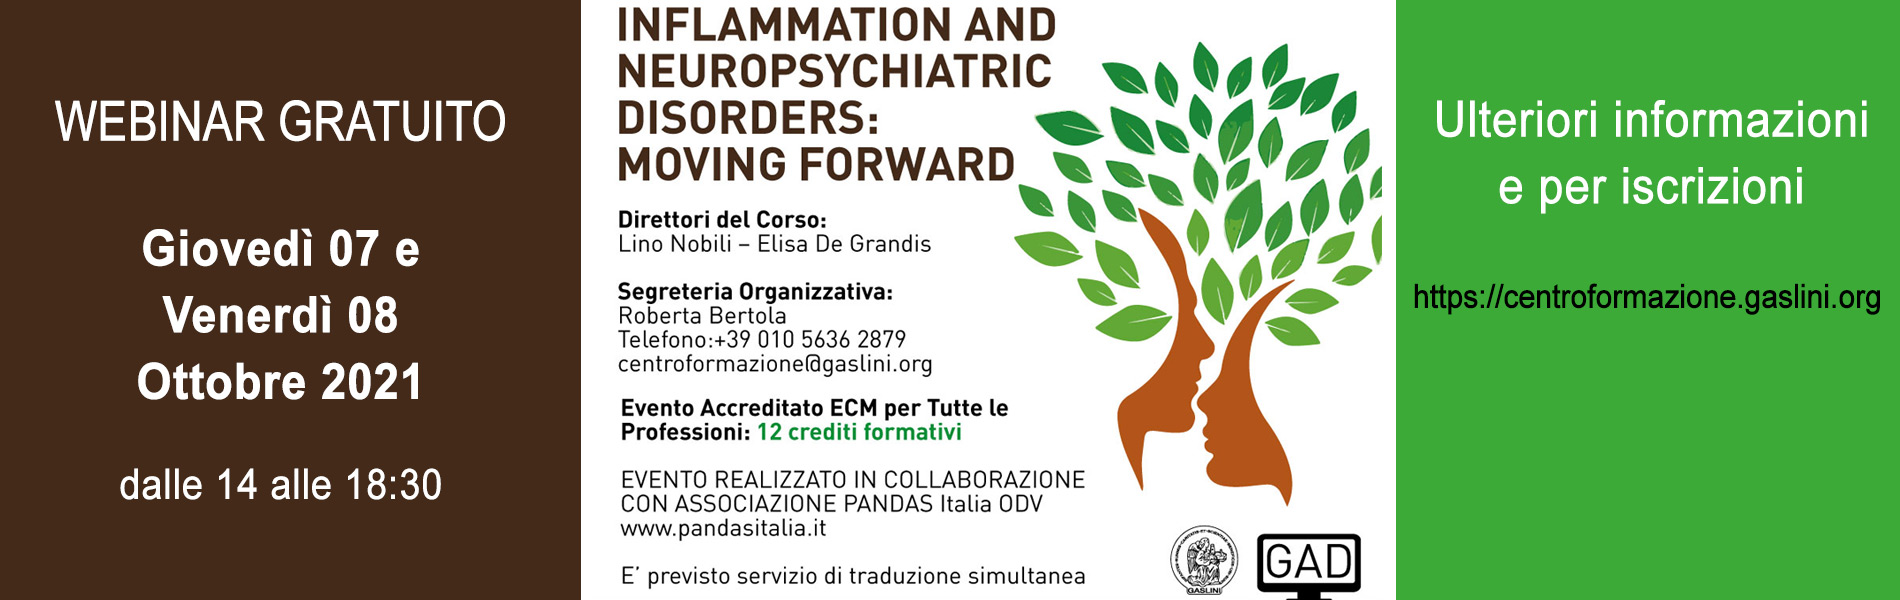 Inflammation and Neuropsychiatric Disorder: Moving forword